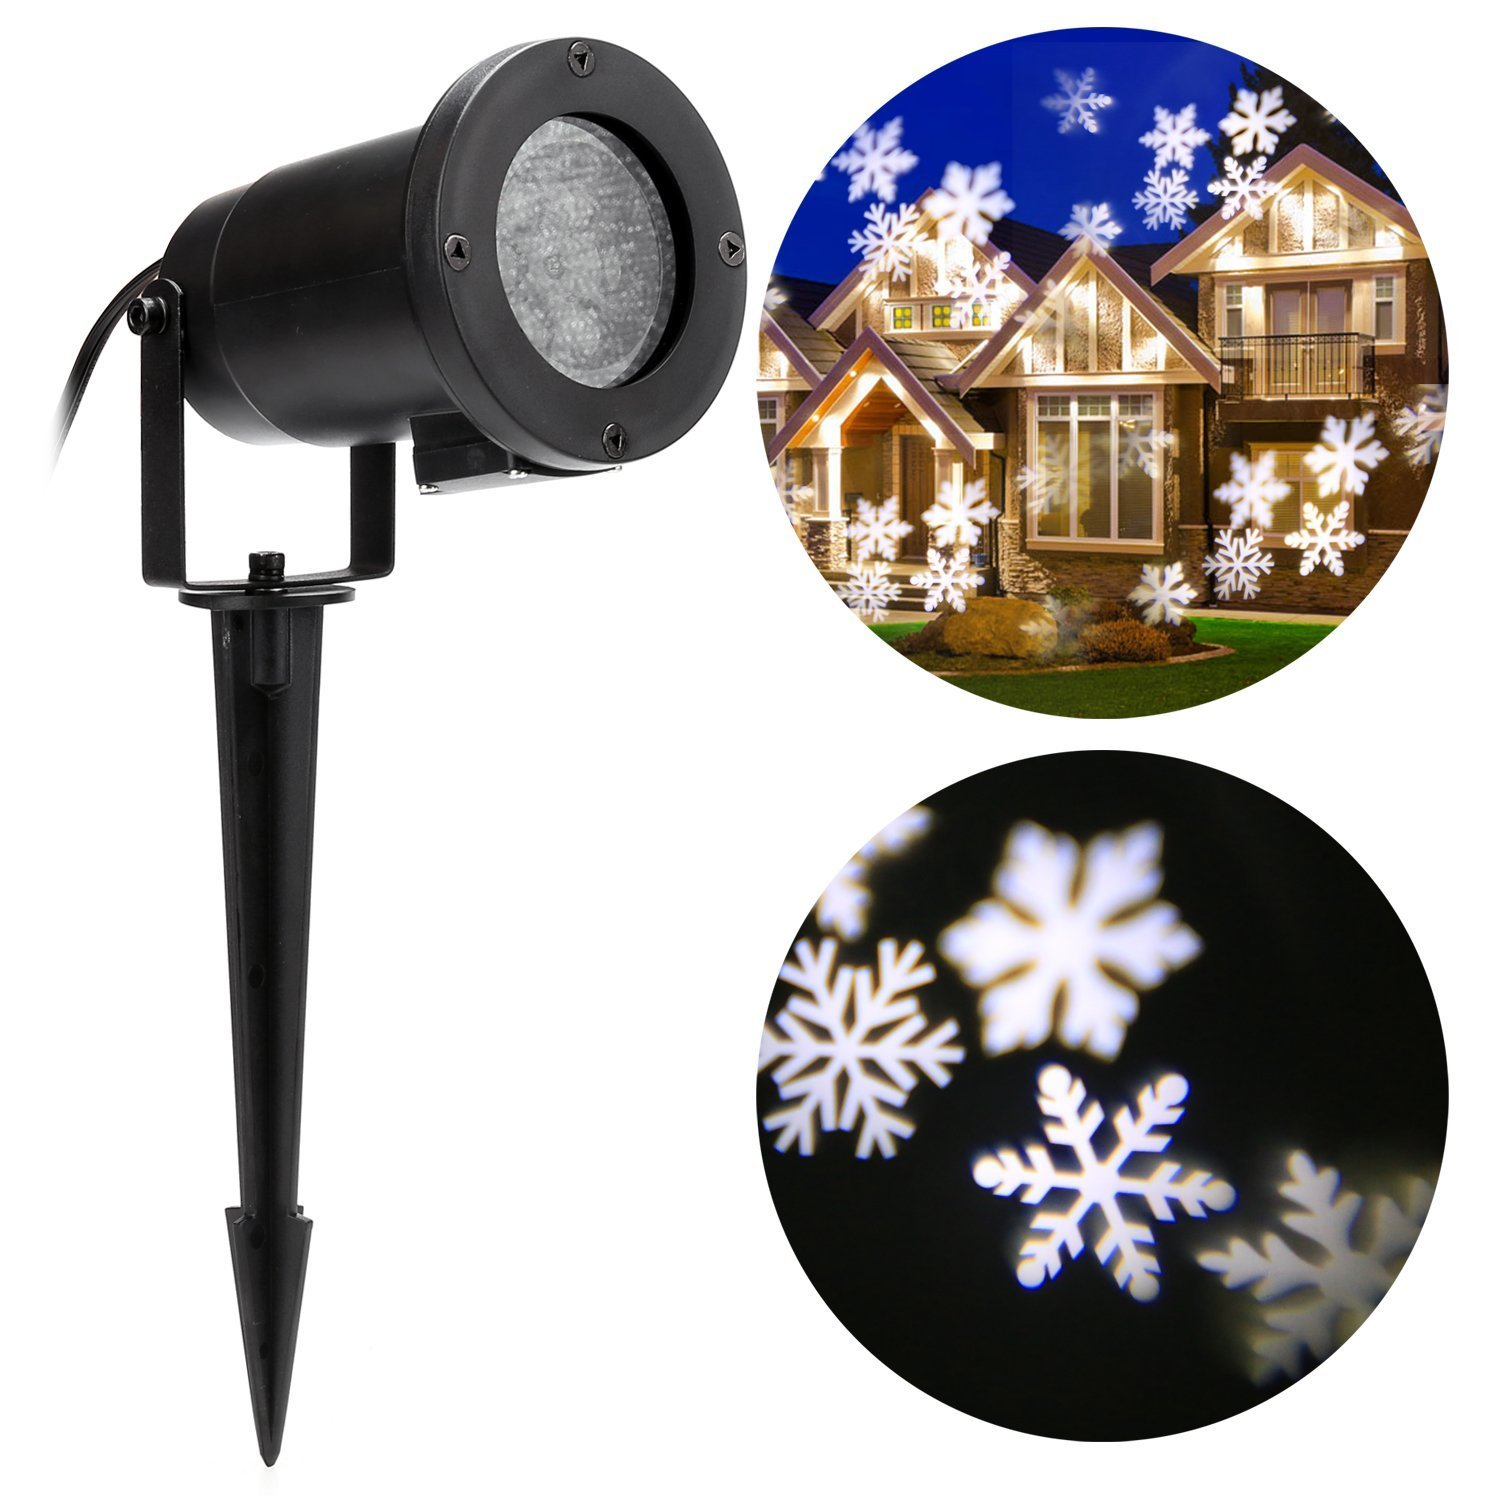 Christmas Projector Light 4 W Moving White Snowflake LED Landscape Projection Lamp Outdoor Indoor Waterproof Decor Spotlights for Party Holiday Home Garden Tree Wall